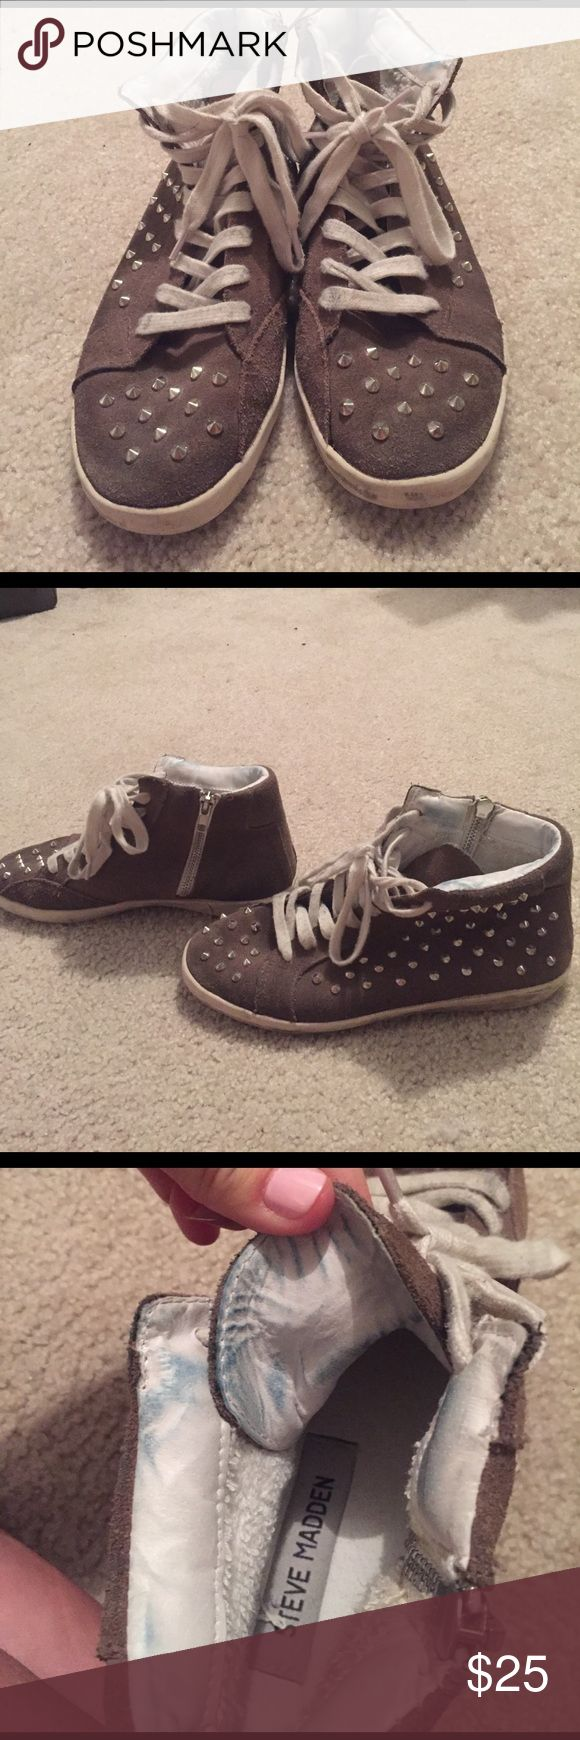 Steve Madden grey suede studded sneakers Suede studded sneakers worn out look- noticeable stains inside from denim rubbing-did not affect shoe at all! Worn out look, super comfortable!! Similar worn-in style to the golden goose sneaker that is very popular! Steve Madden Shoes Sneakers